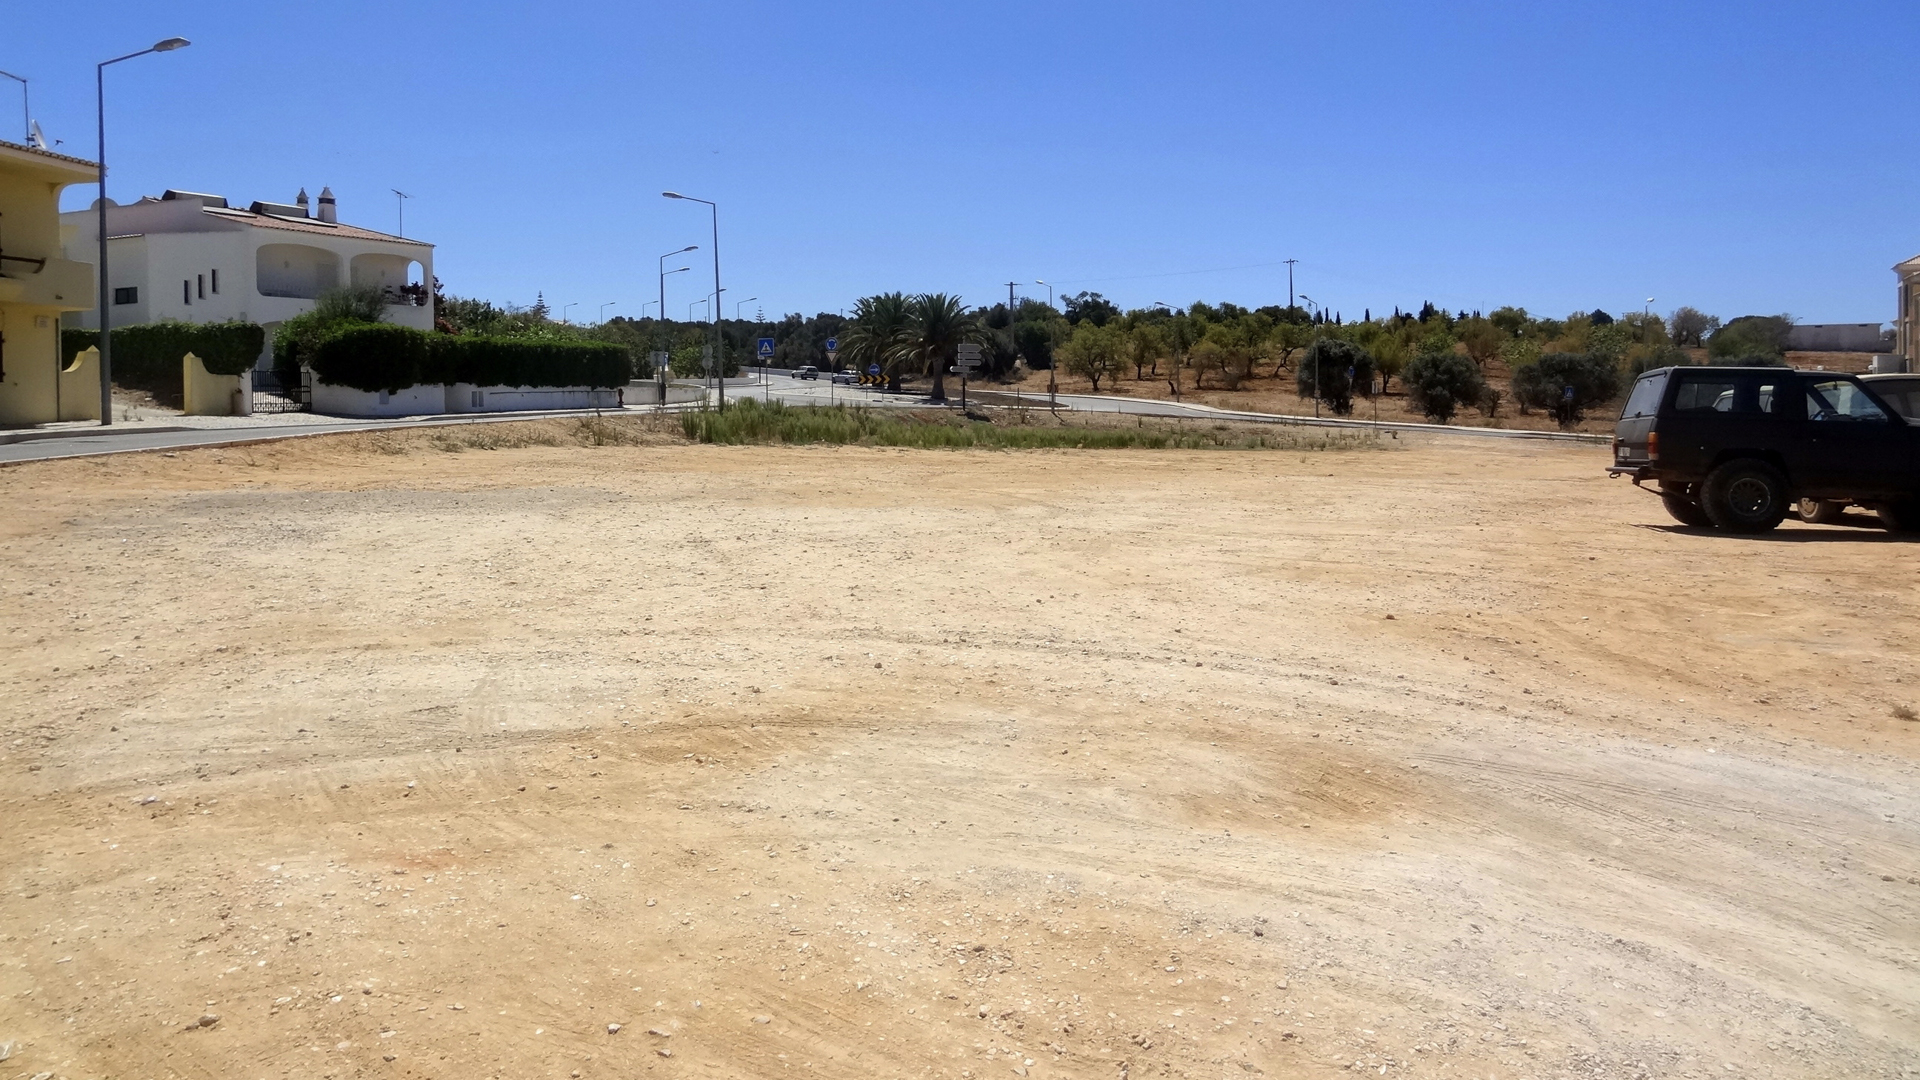 Incredible Opportunity - Plot of Land with Building Permission in Town Center of Guia | VM682 Plot with  over 3200m², with building permission for apartment block, in the center of Guia. Close to all amenities. Very close to several beaches and Salgados Golf Course.